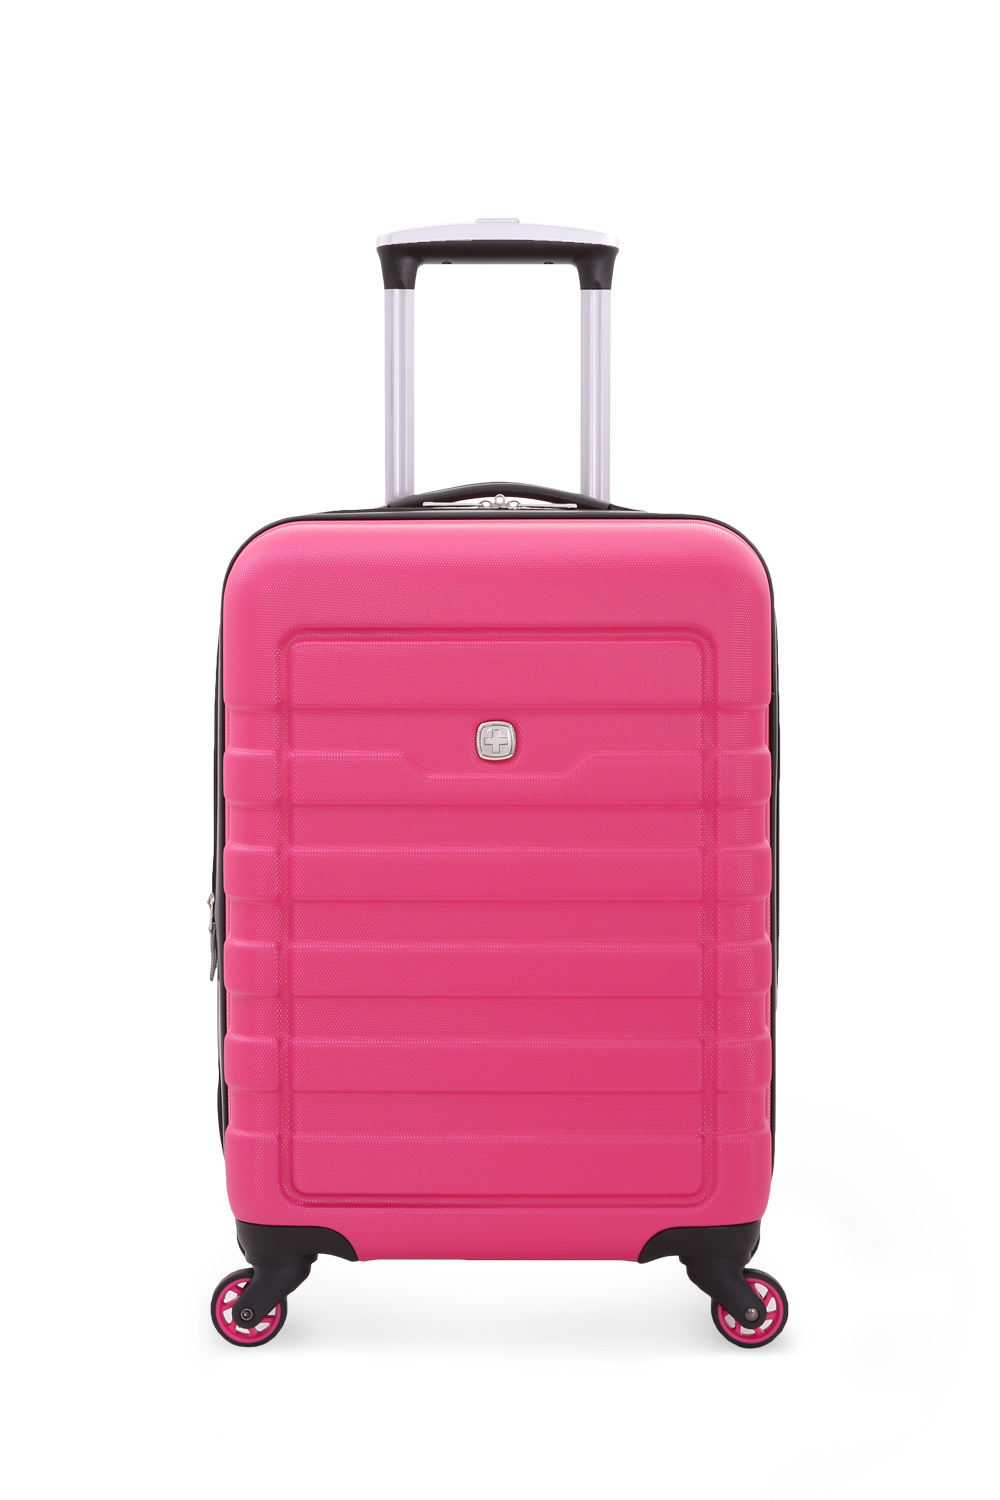 hot-pink-swiss-gear-black-friday-luggage-deal